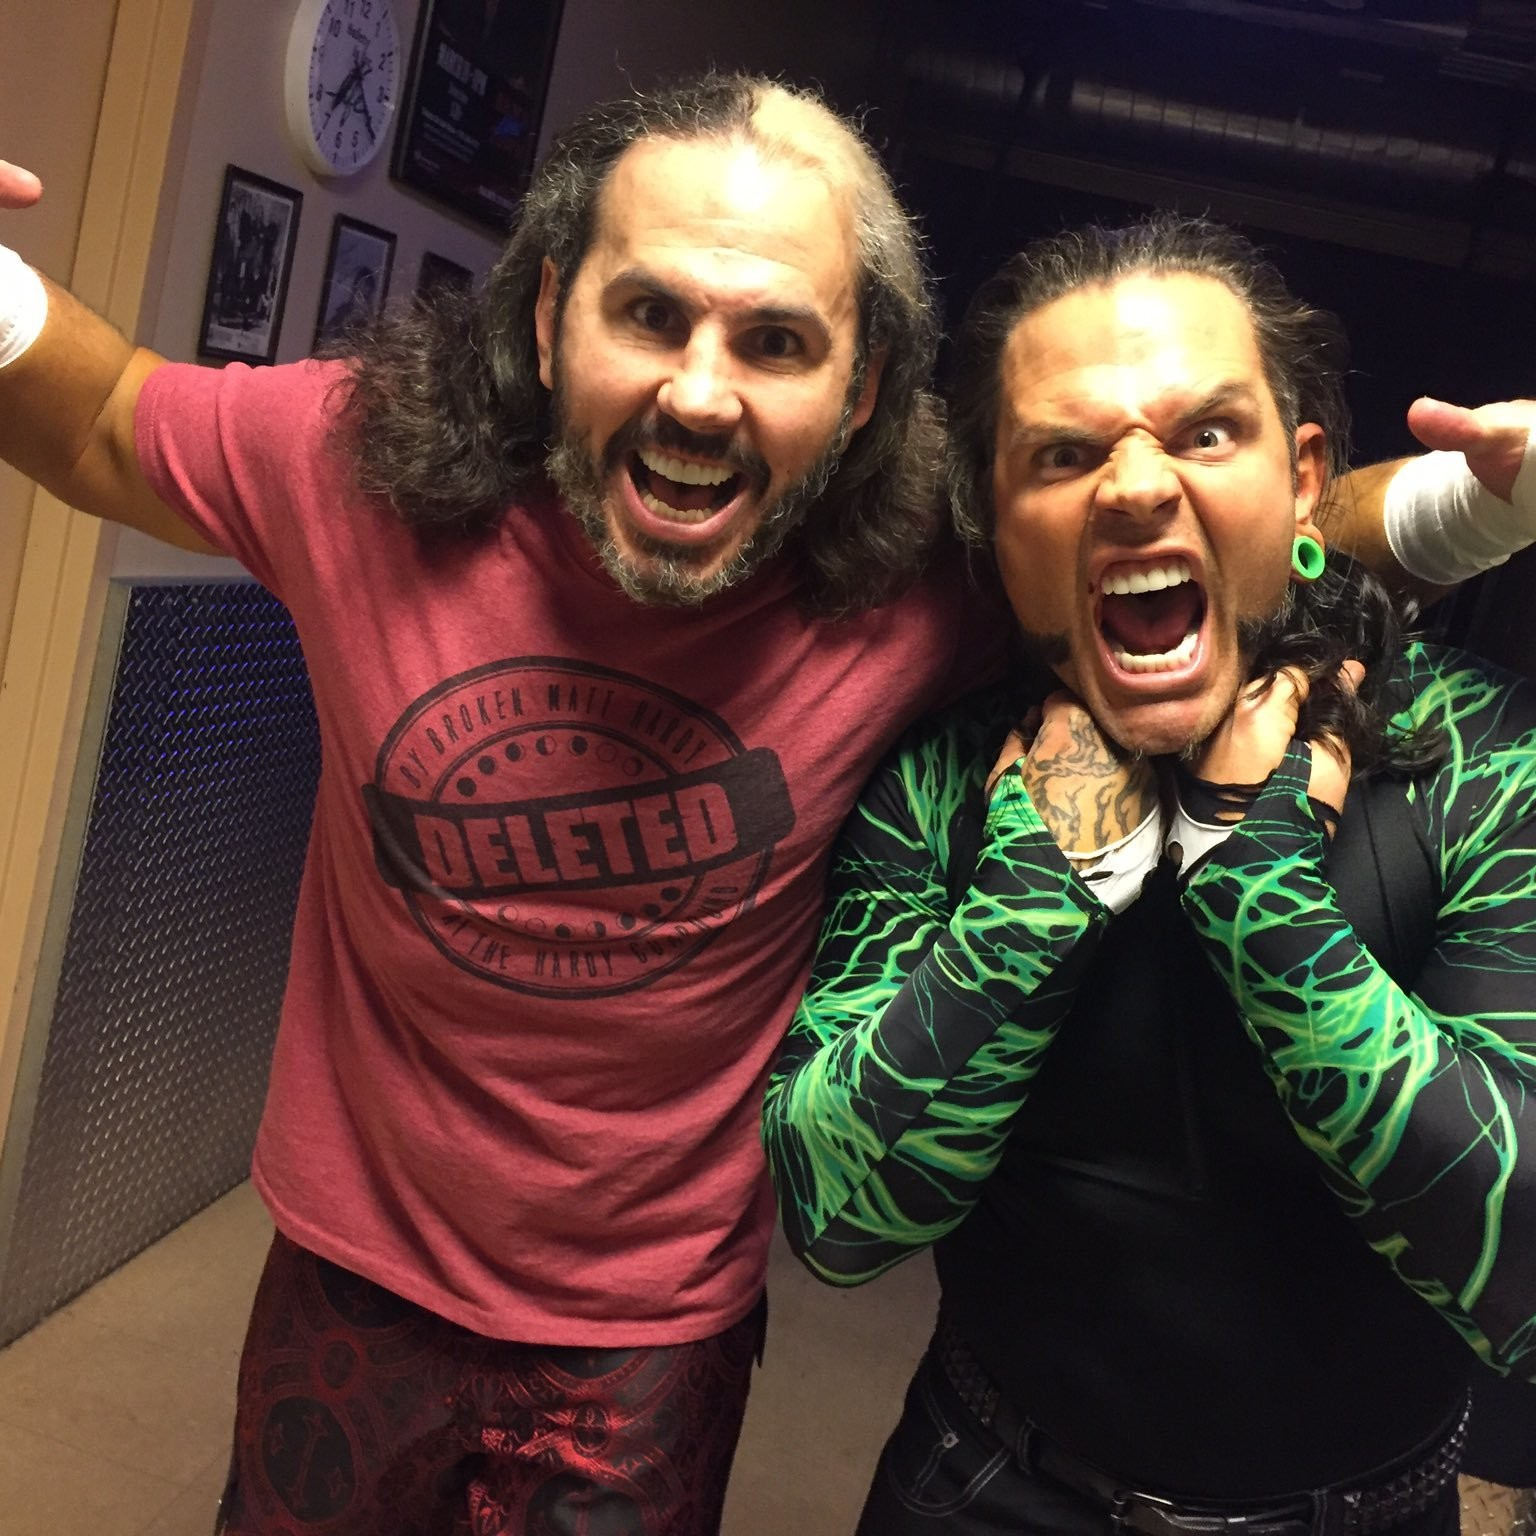 The-hardy-boyz-and-impact-wrestling-legal-woes-1489446164.jpg?crop=0